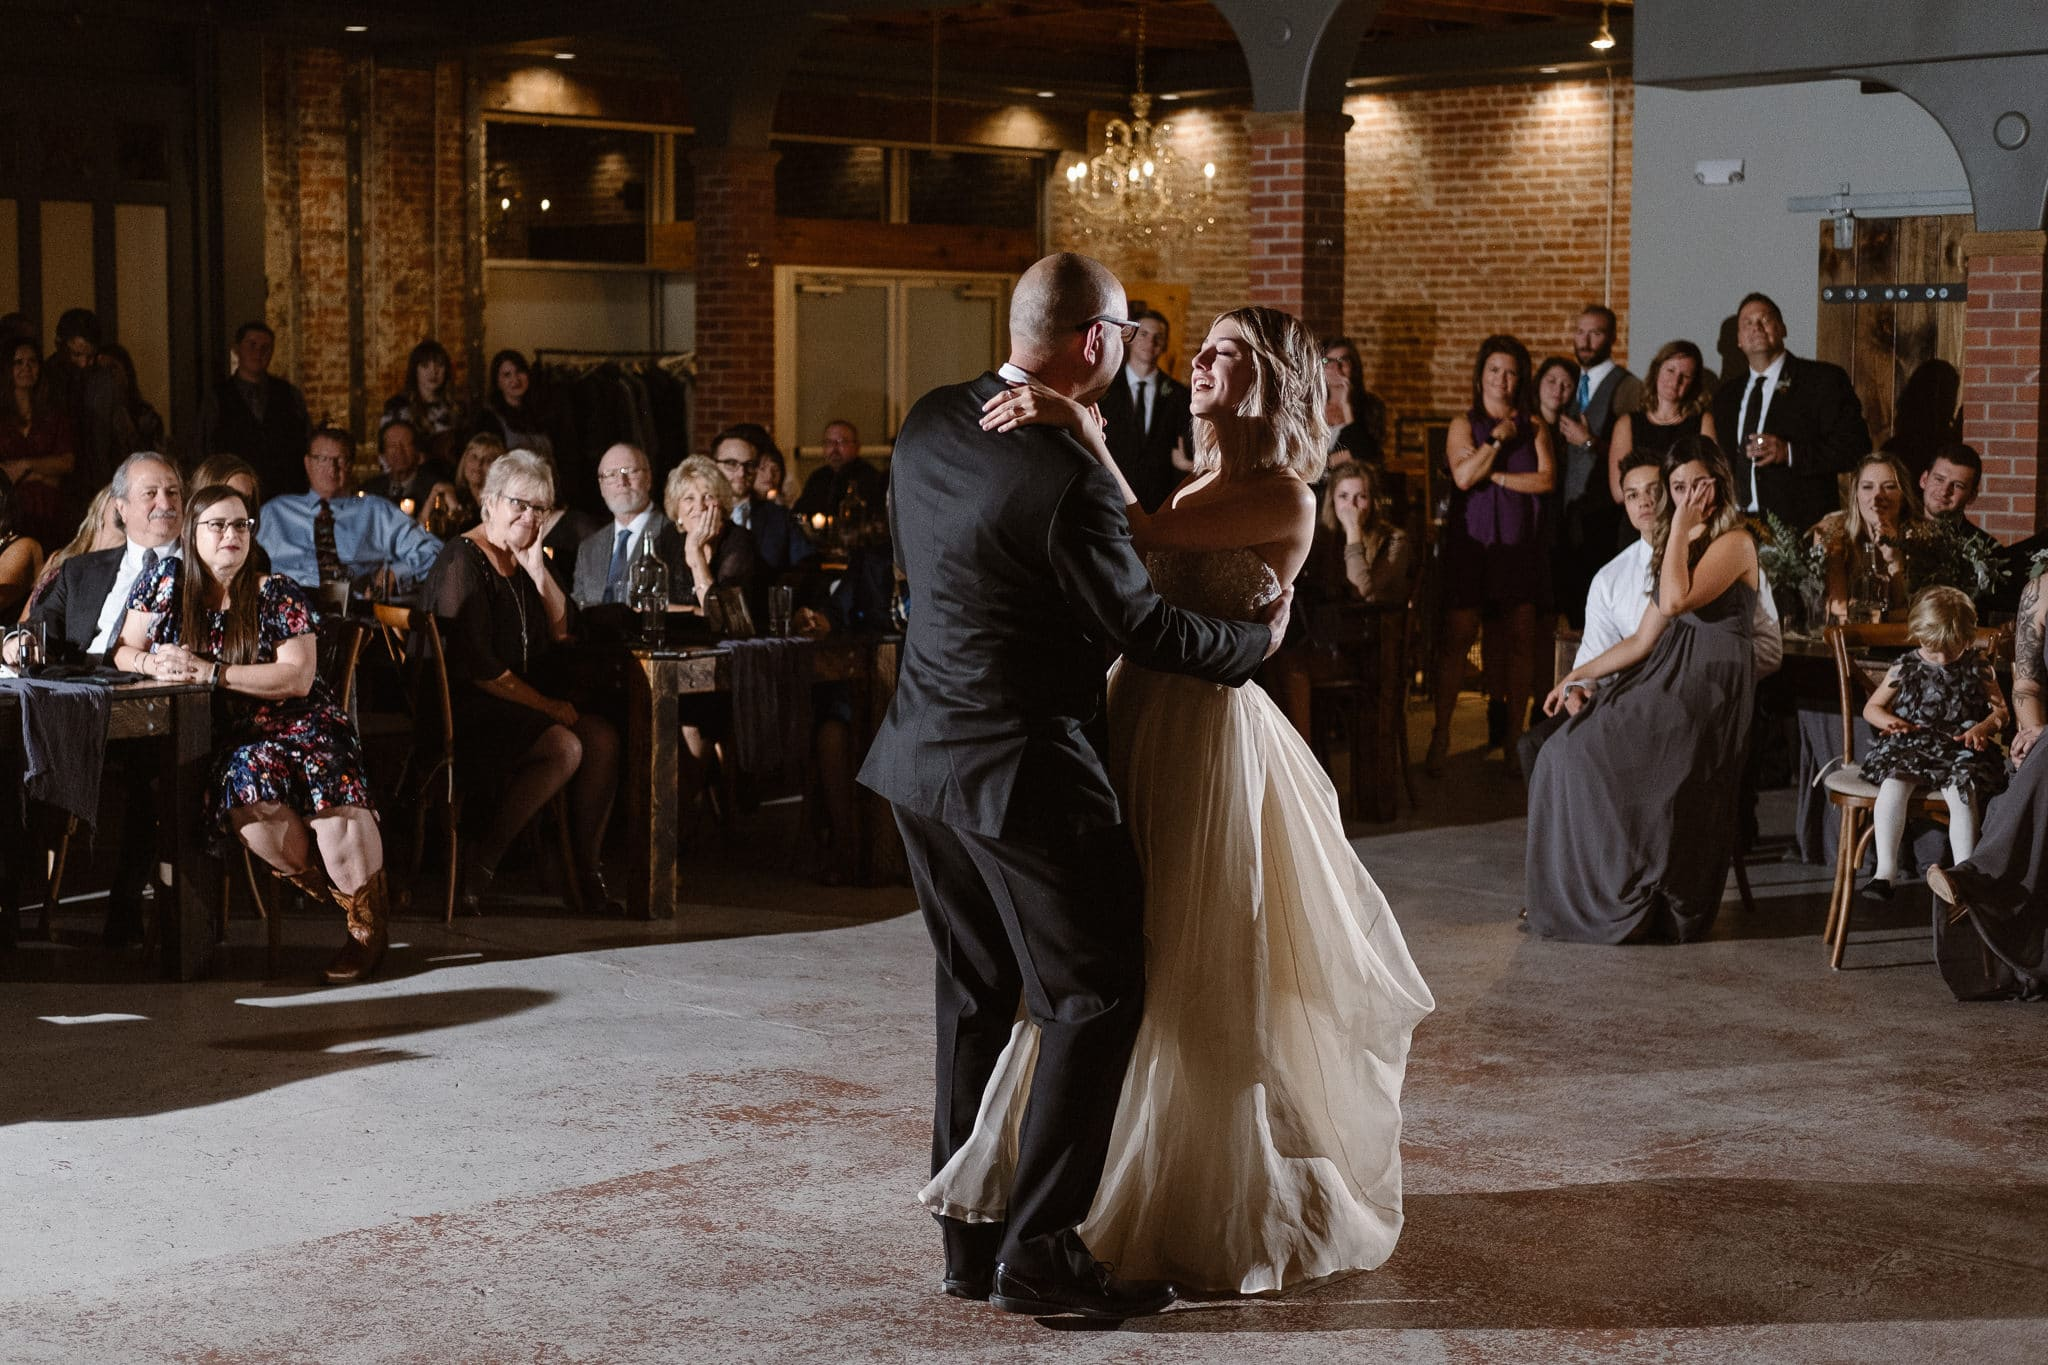 St Vrain Wedding Photographer | Longmont Wedding Photographer | Colorado Winter Wedding Photographer, Colorado industrial chic wedding ceremony, bride and father dancing, off camera flash photography reception lighting